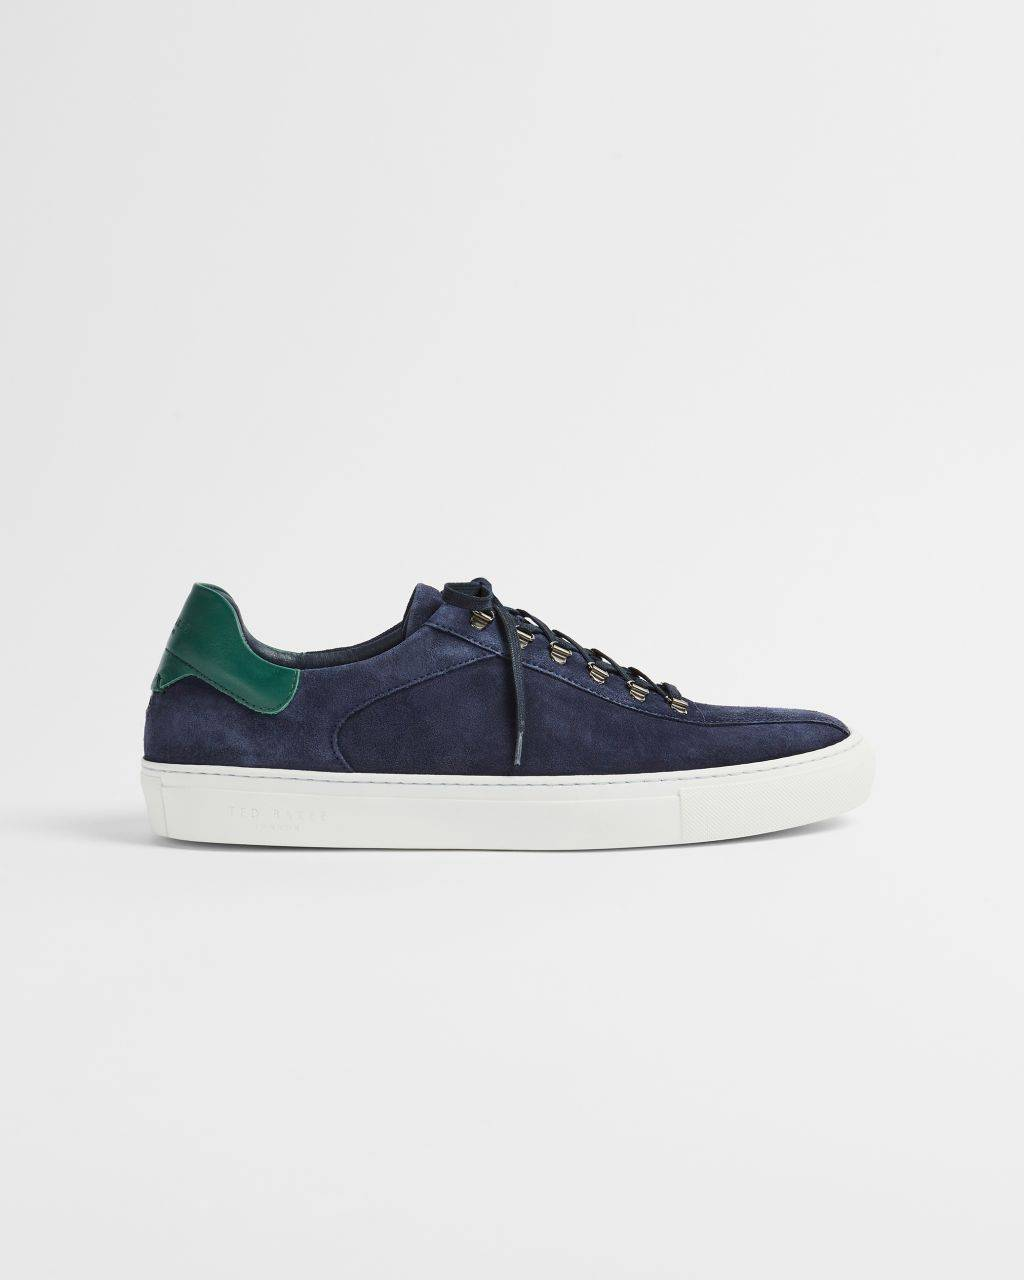 Ted Baker Hiker Lace Suede Trainers  - Navy - Size: UK 10 (EU 44)